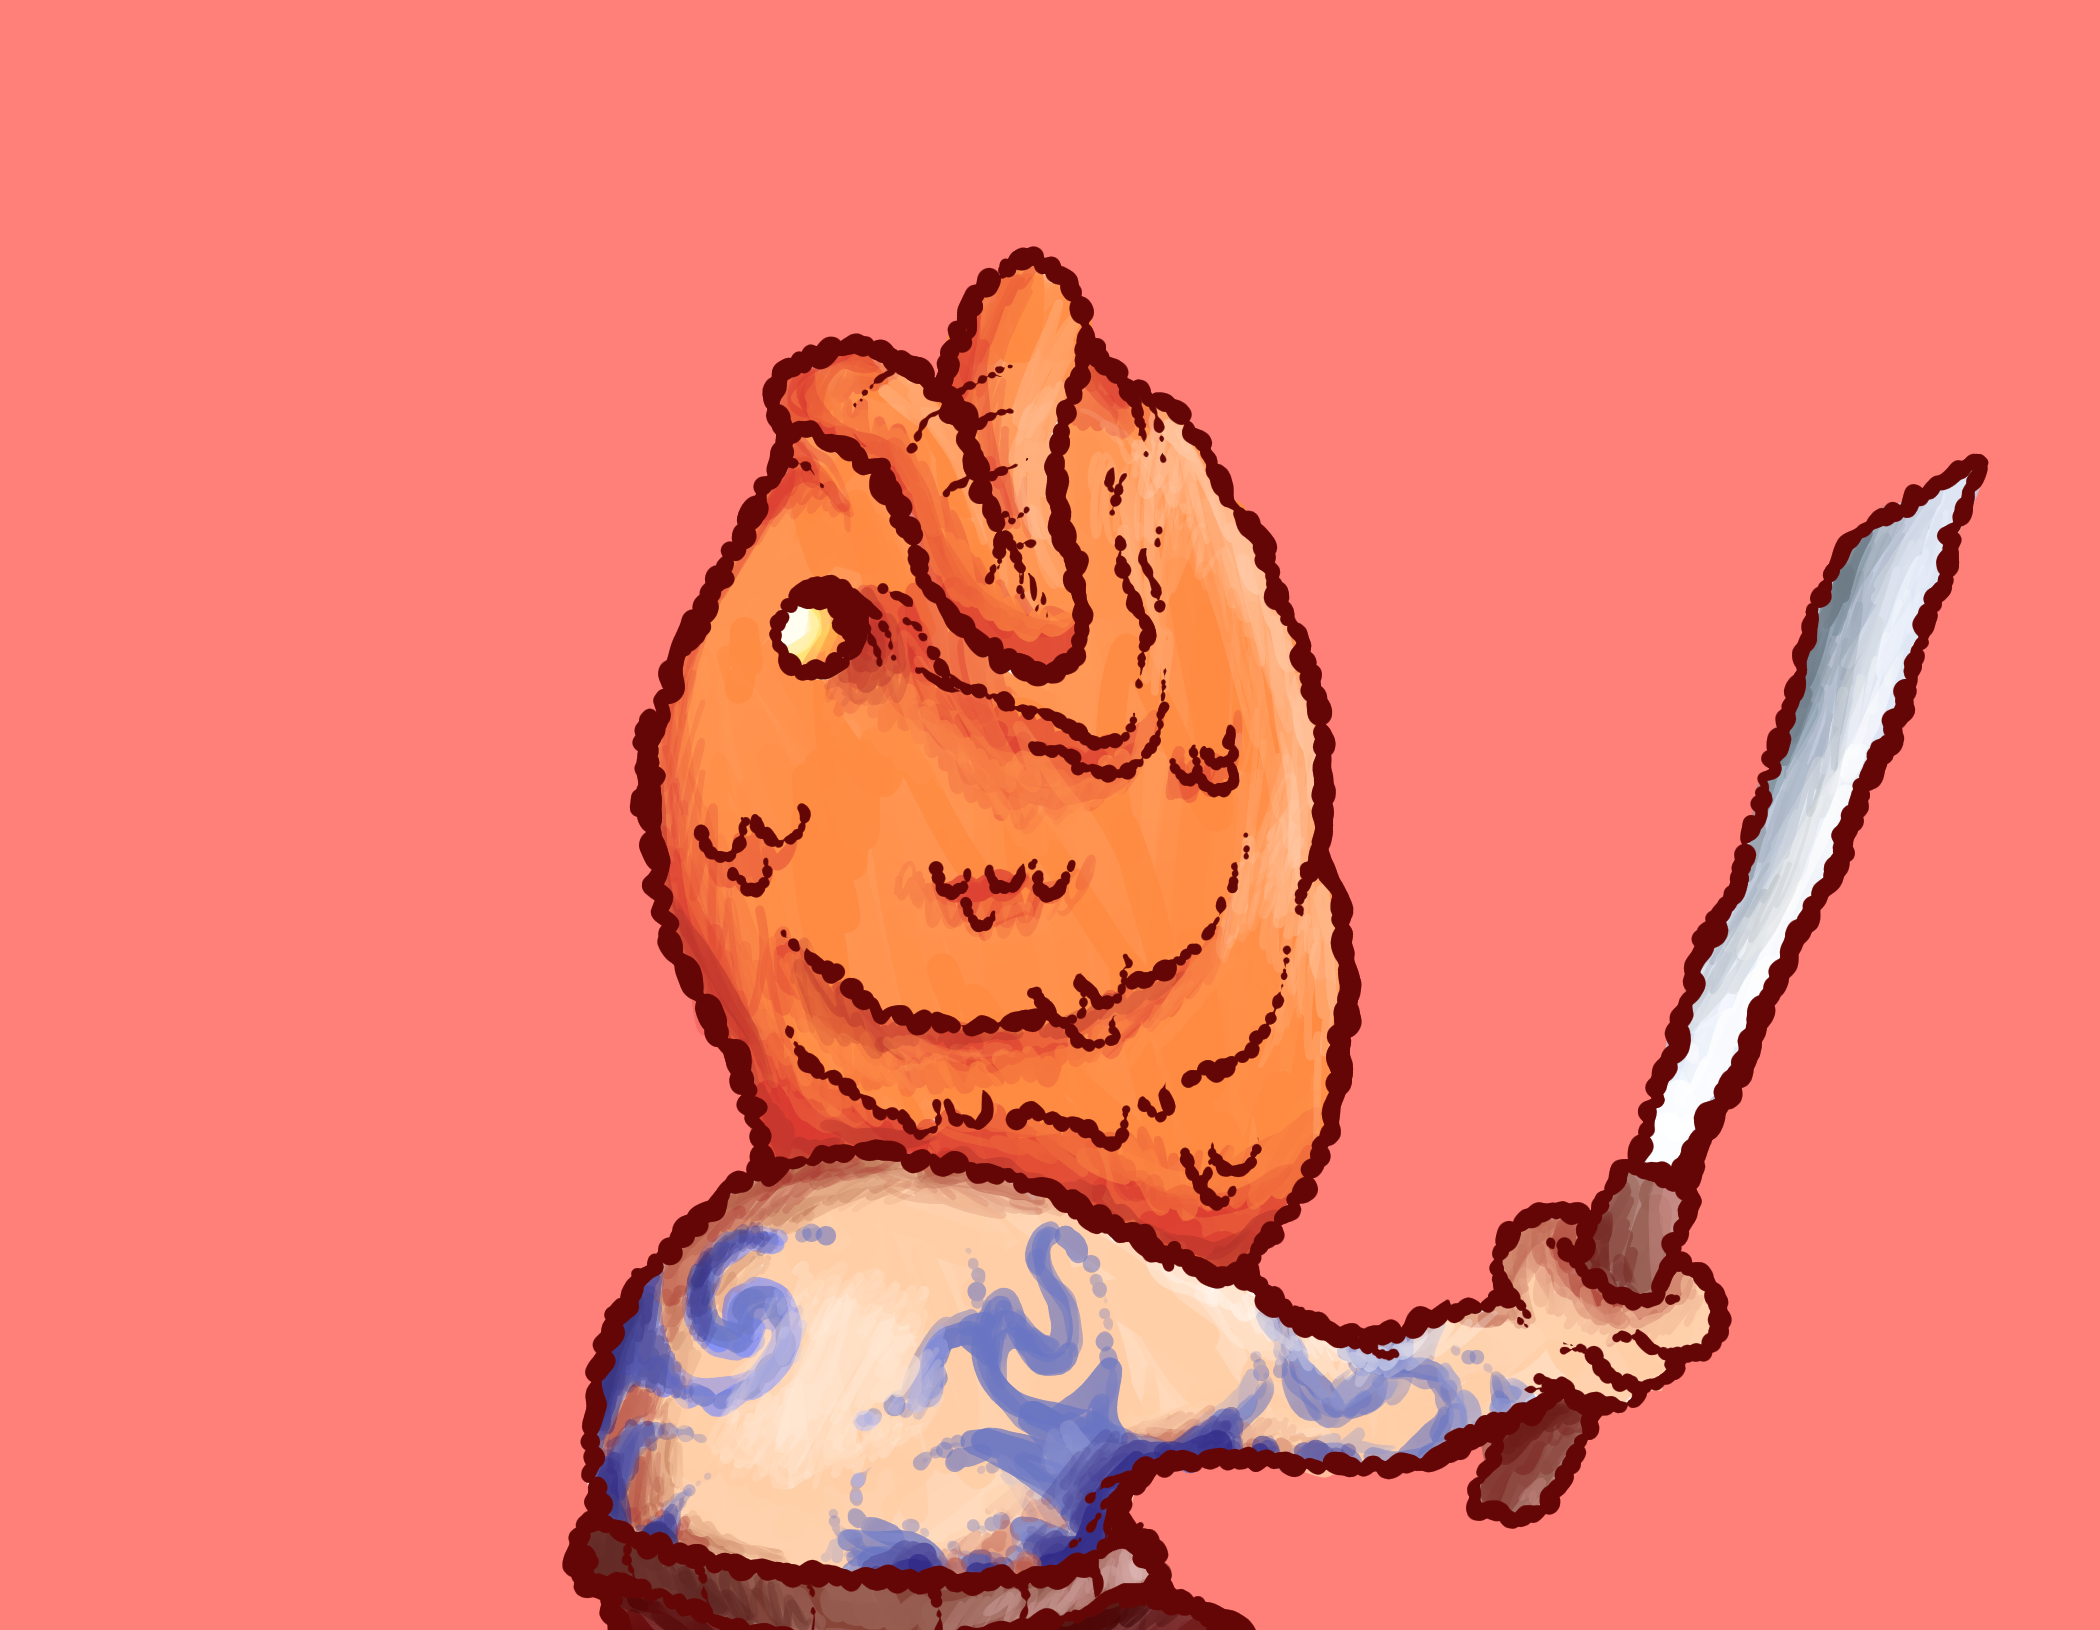 Carp from lisa the painful